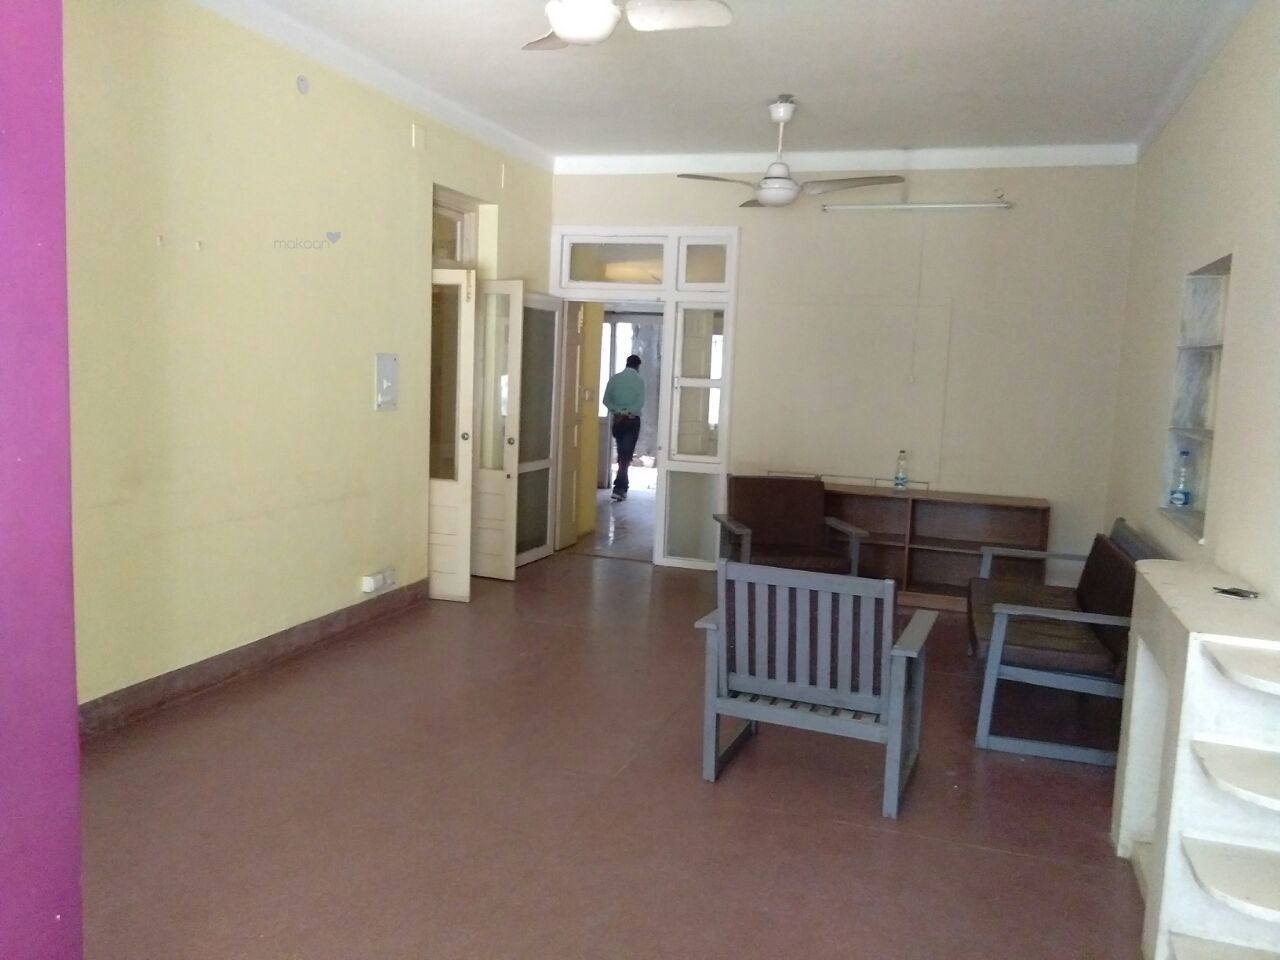 3600 sq ft 3BHK 3BHK+3T (3,600 sq ft) + Study Room Property By Goswami Realtors In Project, Golf Links